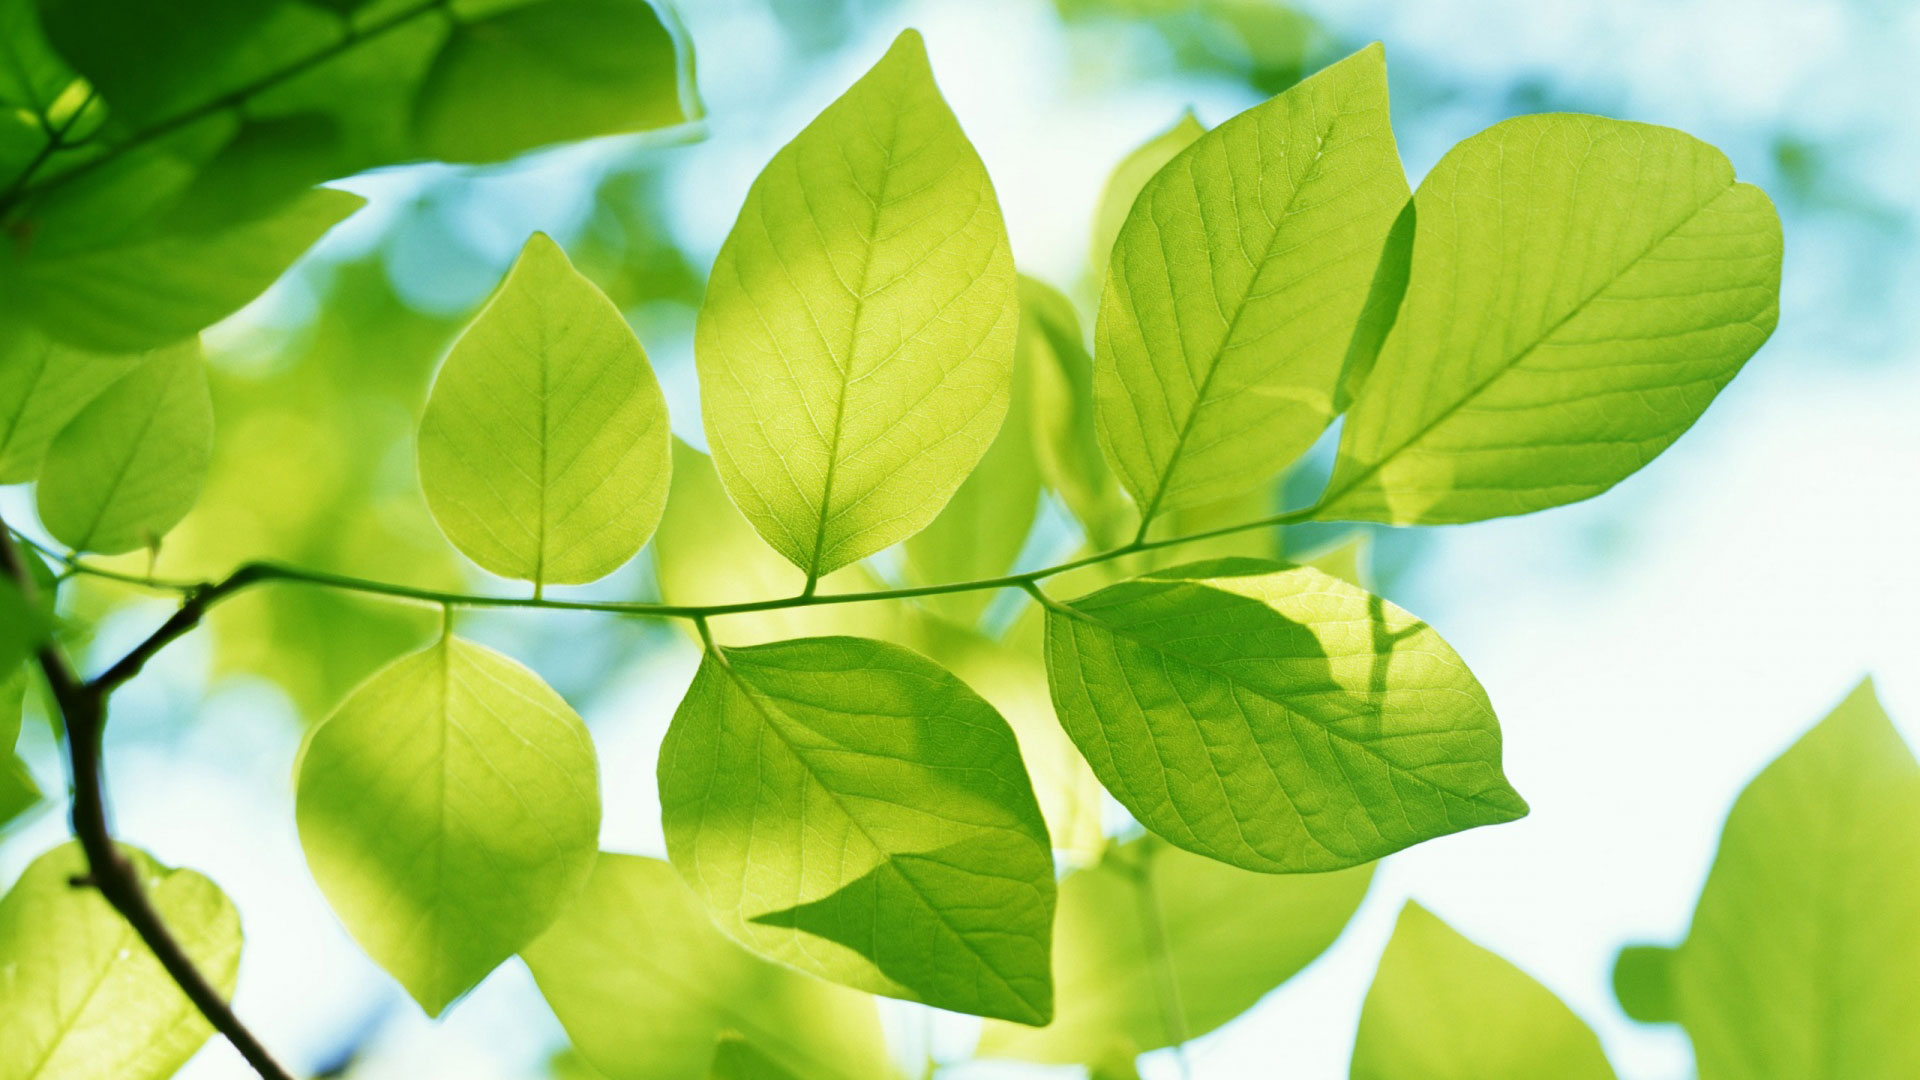 HD Wallpapers Green Leaves